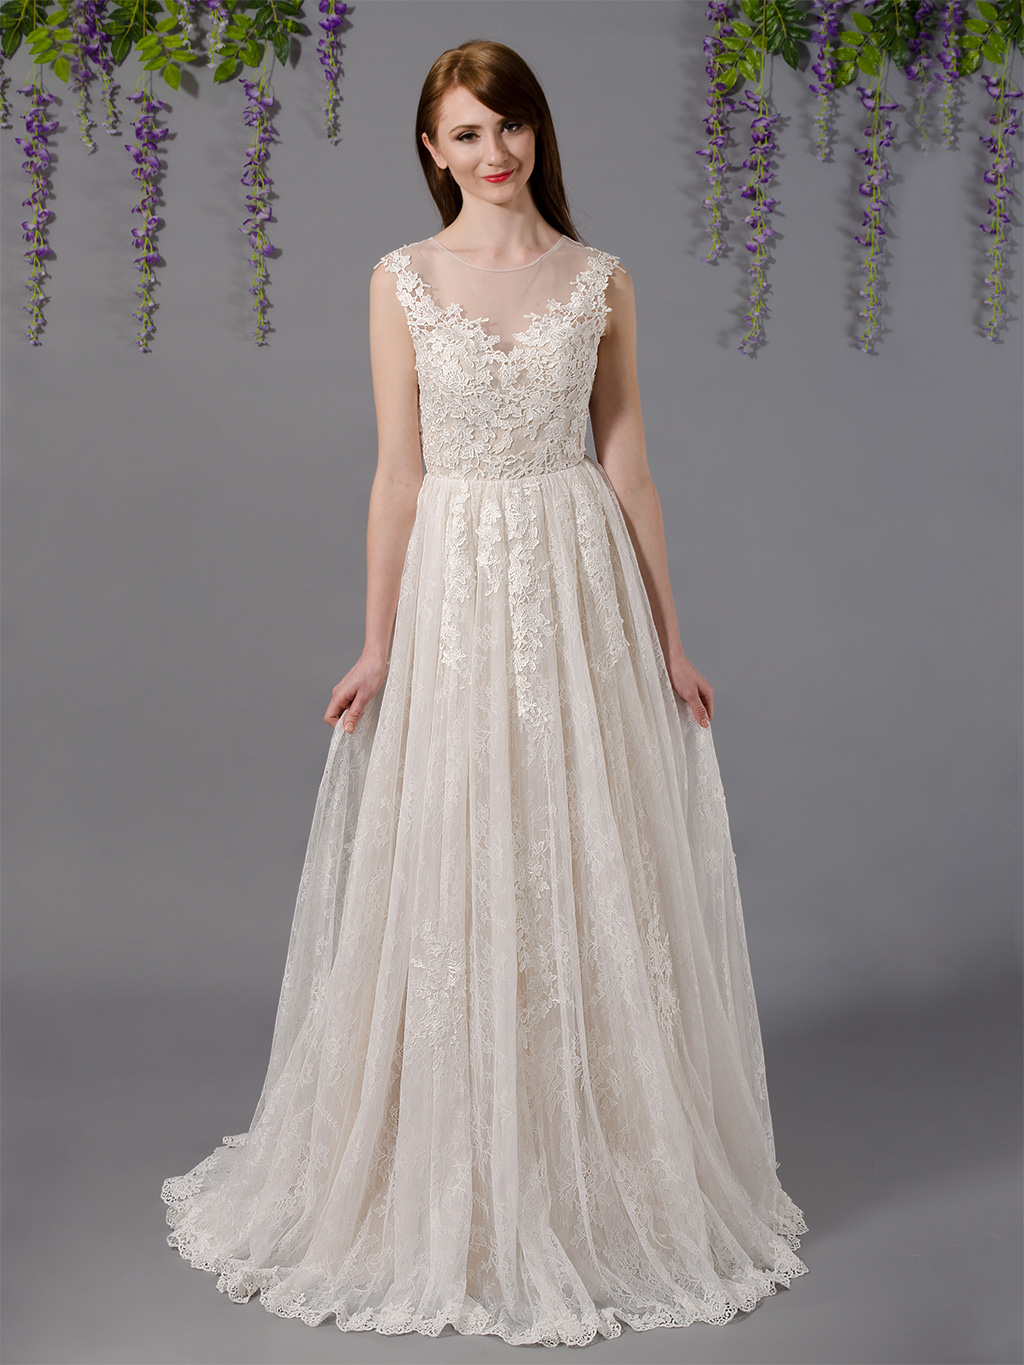 Sleeveless lace wedding dress with tulle skirts 4037